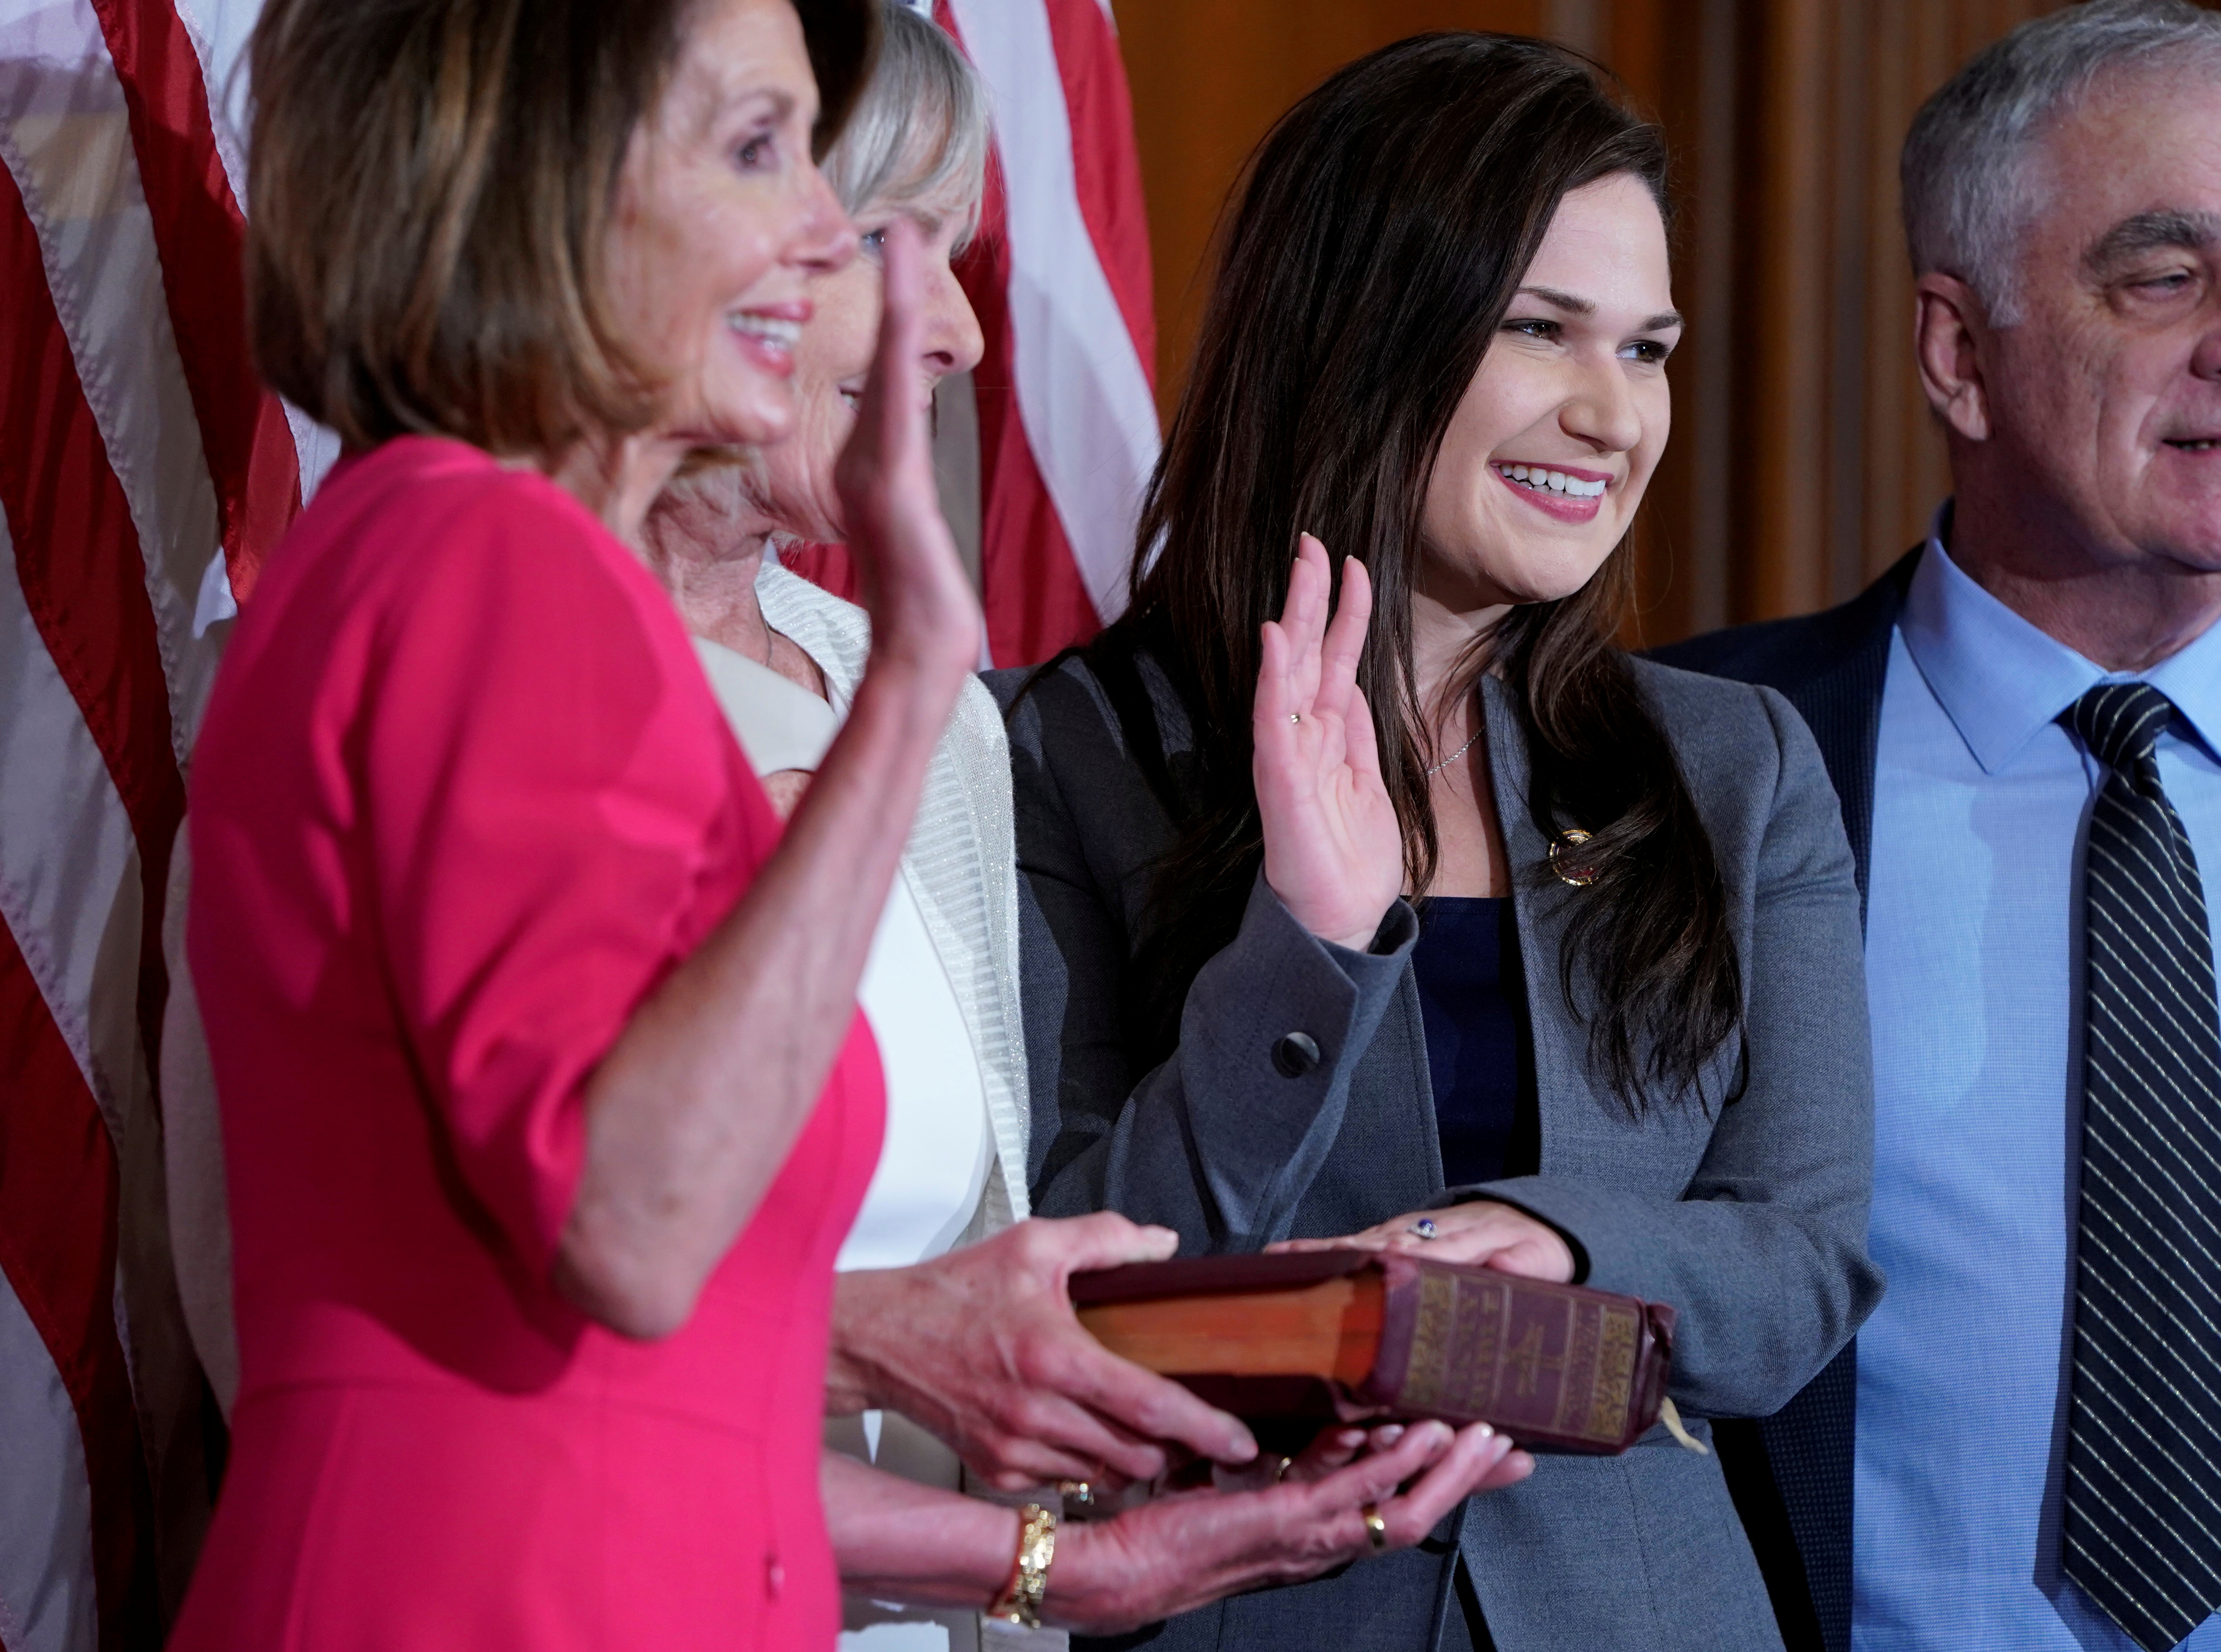 Rep. Abby Finkenauer (D-IA) poses with Speaker of the House Nancy Pelosi (D-CA) for a ceremonial swearing-in picture on Capitol Hill in Washington, U.S., January 3, 2019. REUTERS/Joshua Roberts/File Photo